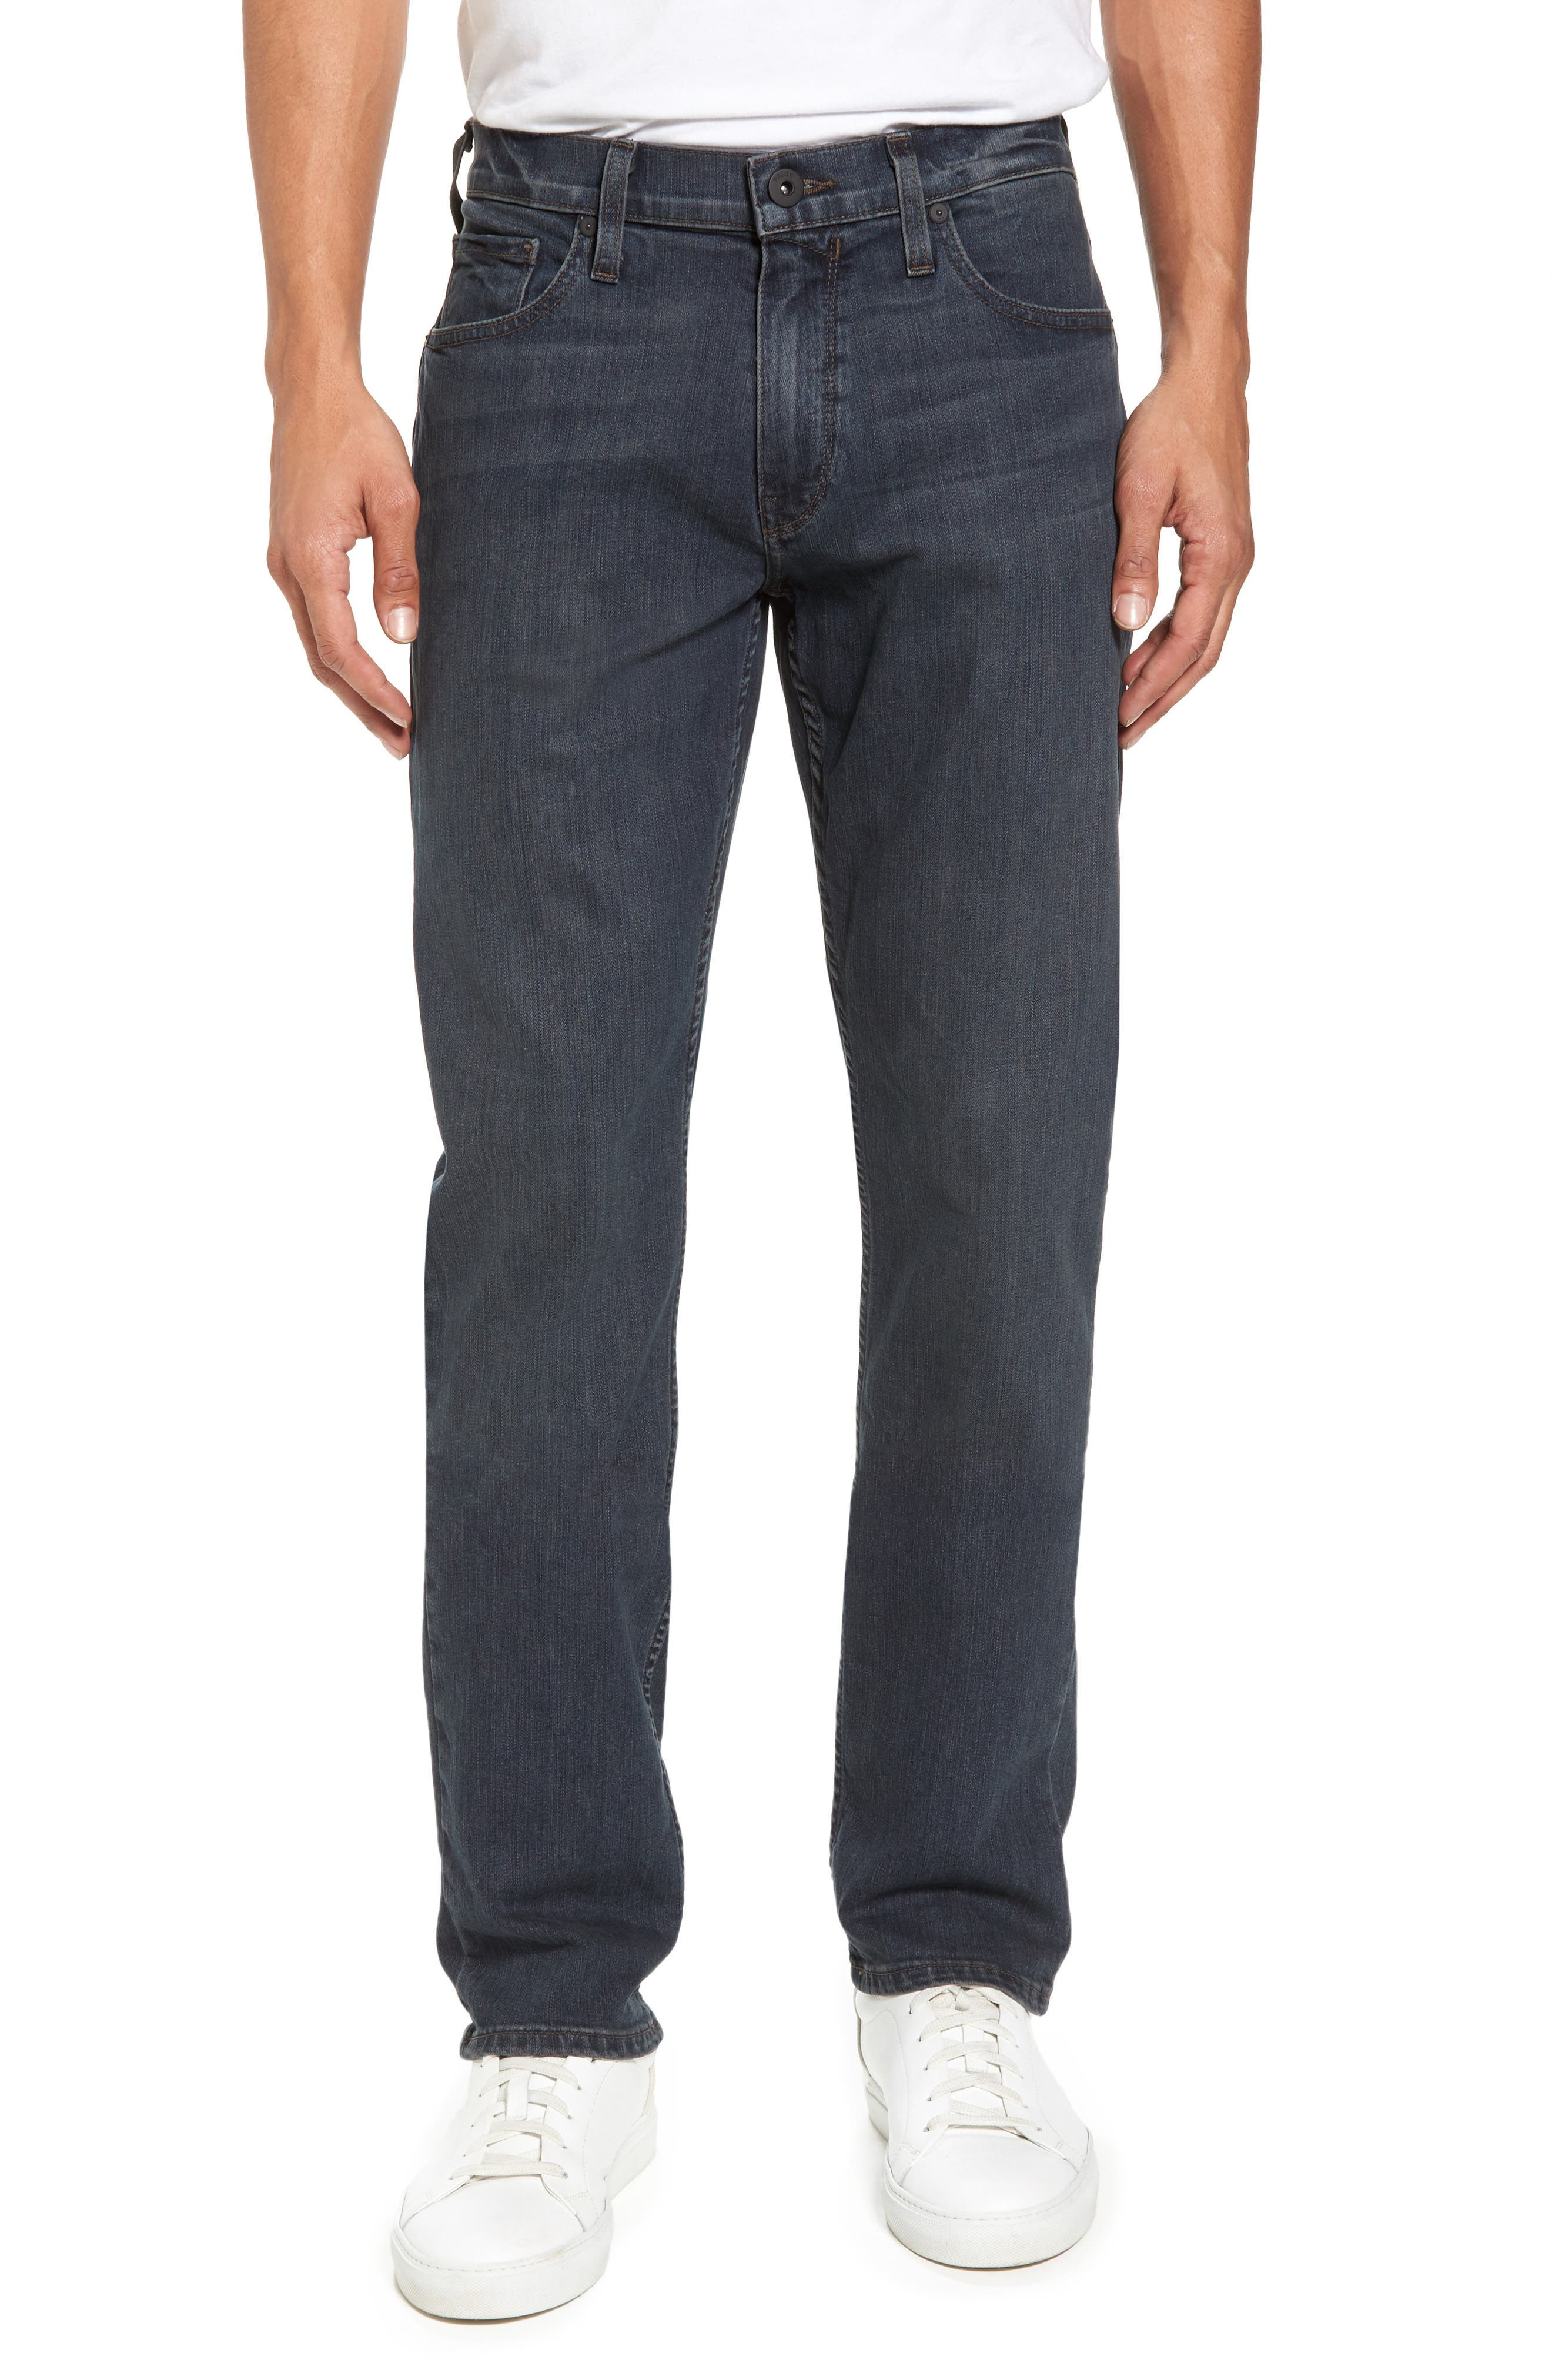 Legacy - Federal Slim Straight Leg Jeans,                         Main,                         color, Triton